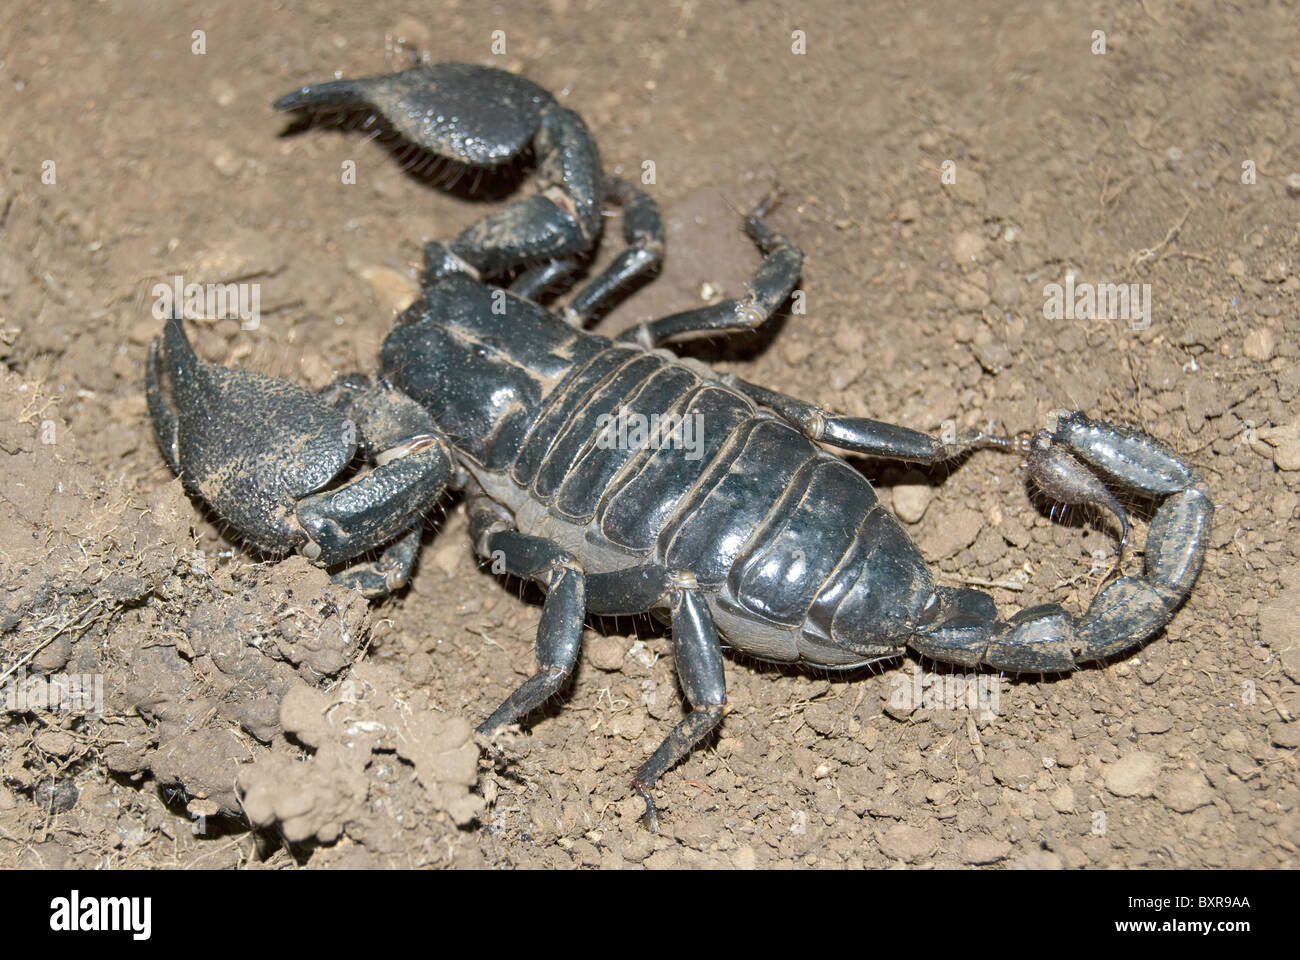 Scorpion,  Scientific Name: Heterometrus spp - Stock Image